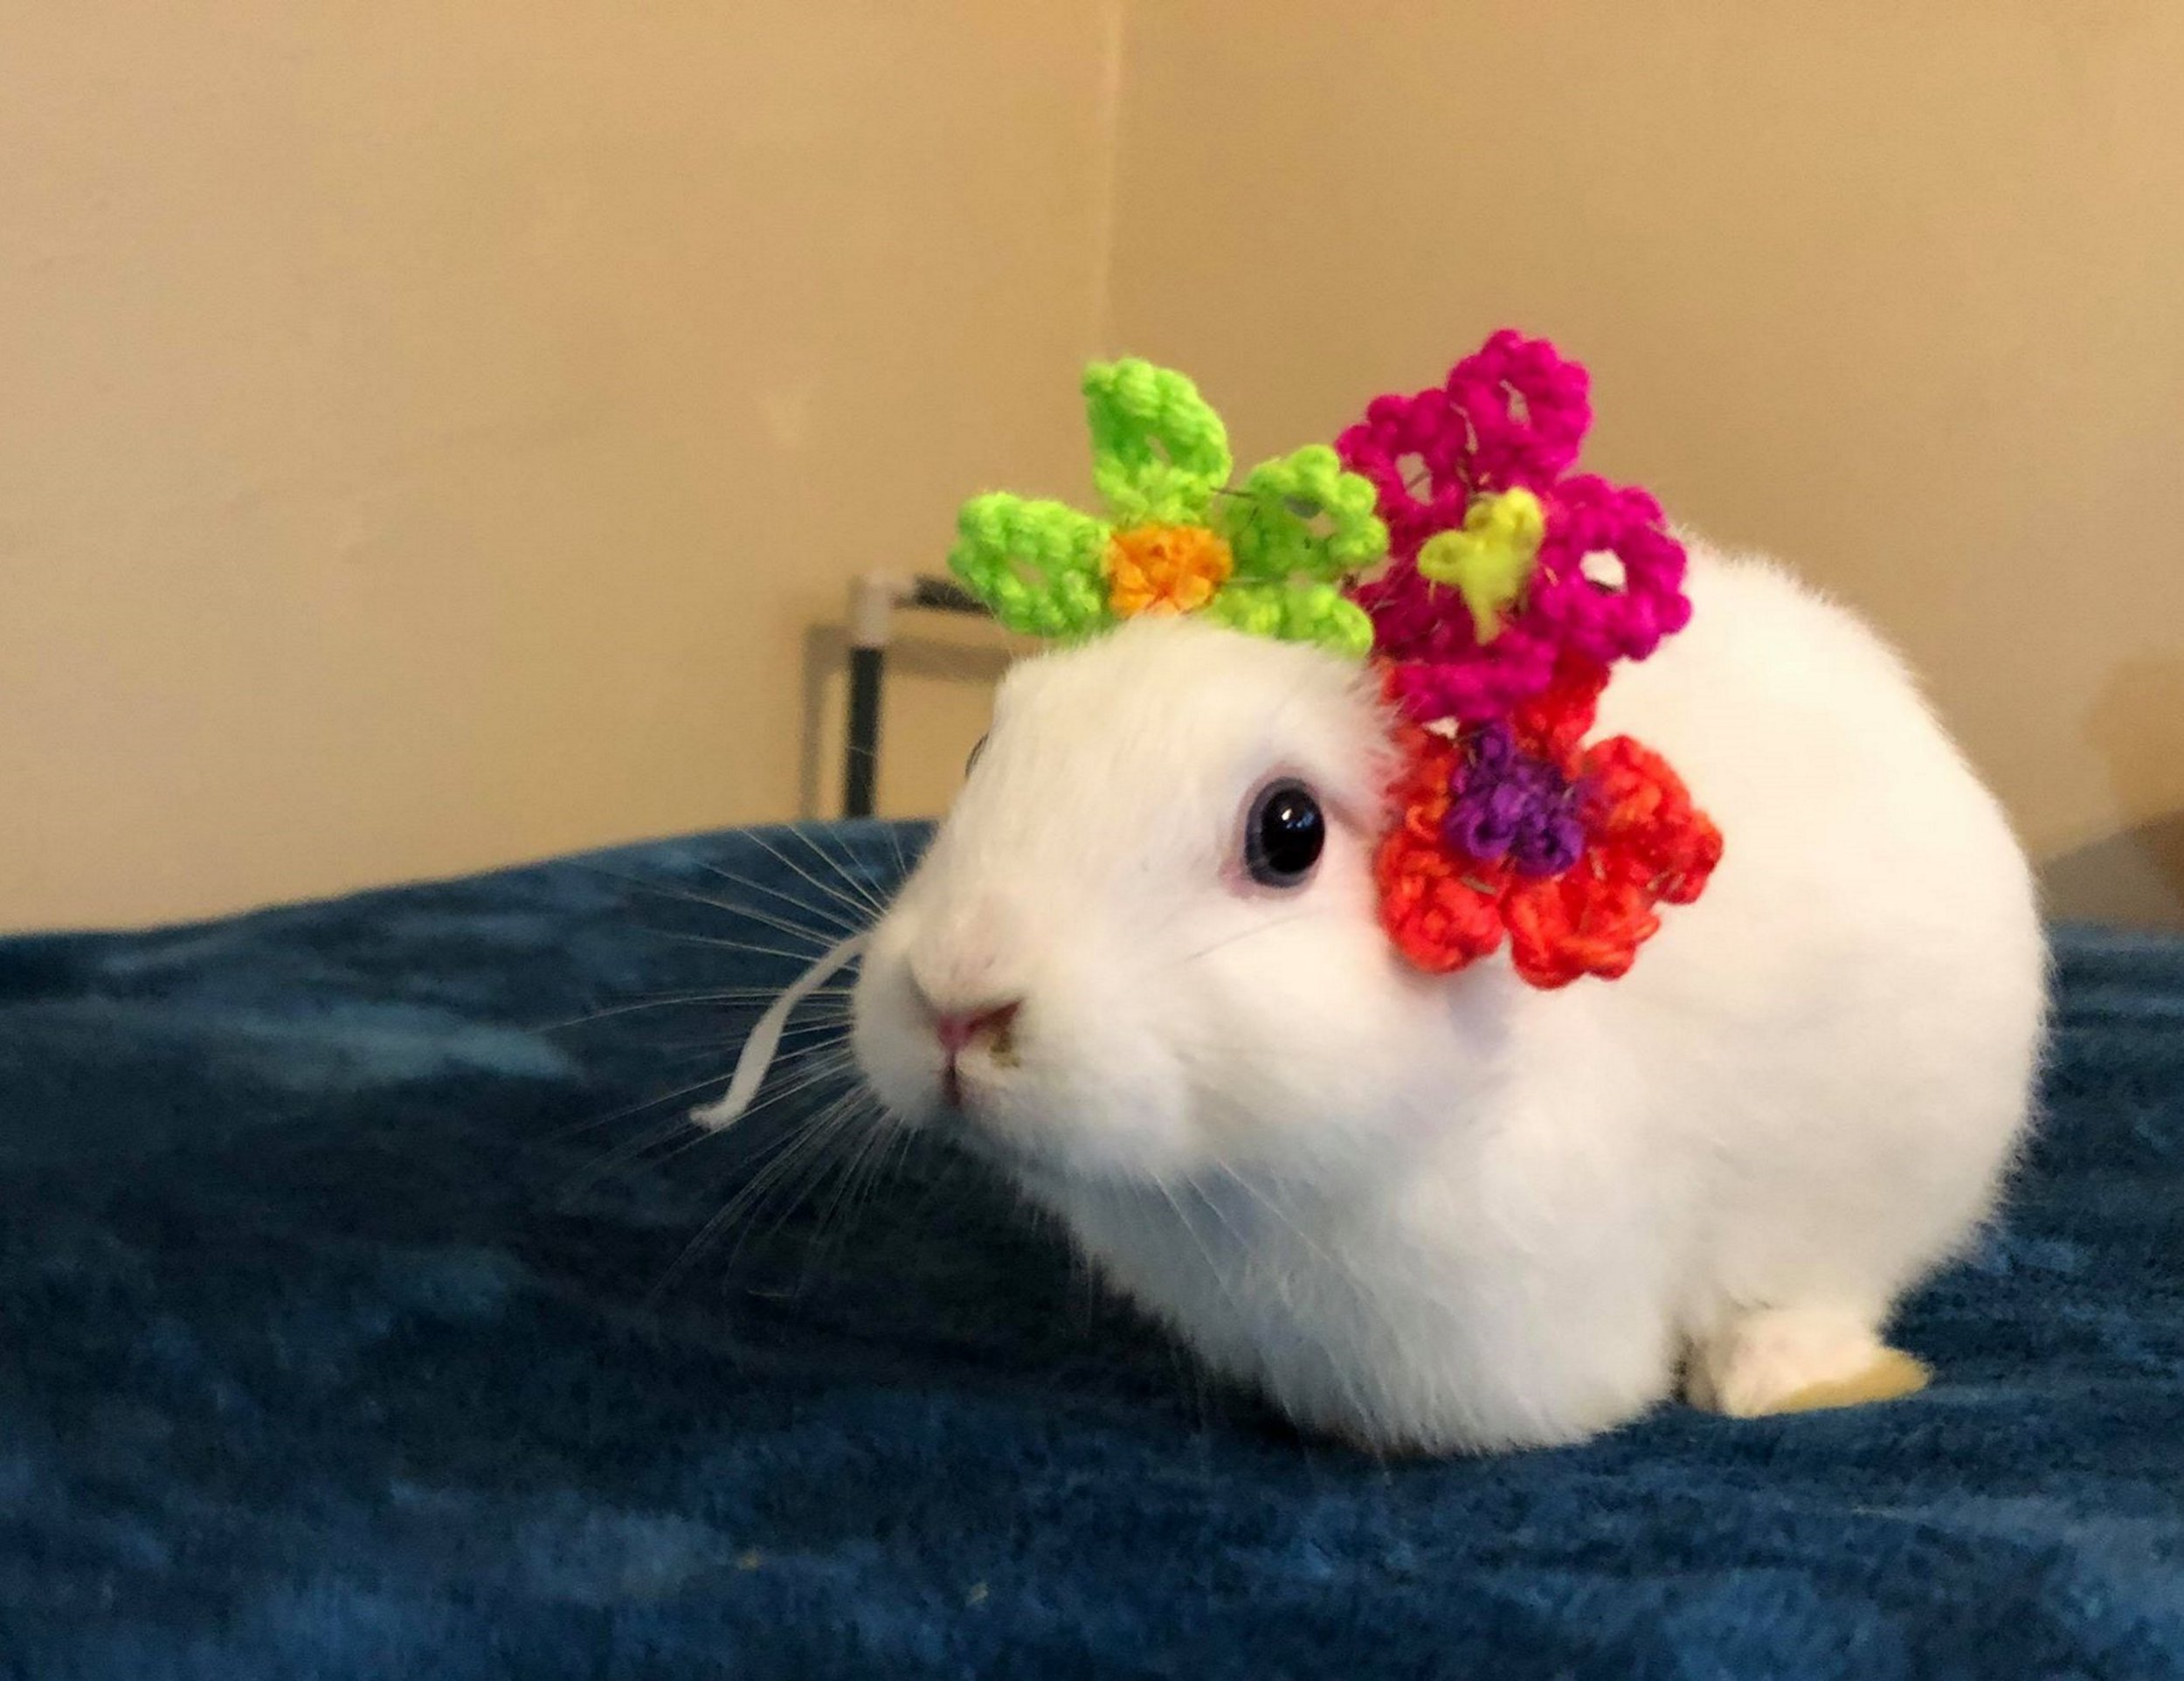 PIC FROM Kennedy News and Media (PICTURED: ADORABLE MIMI THE BUNNY WEARING HER NEW KNITTED FLOWER HEADBAND) A tiny bunny born with NO EARS can now live 'hoppily ever after' - as her caring adoptive owner KNITTED her a pair out of wool. Mimi, the seven-week-old runt of her litter, is completely deaf and has only three legs, but thanks to Rodajia Welch, 22, and her wool ears, the rabbit can 'be whoever she wants to be'. To make sure she feels as fabulous as her furry siblings, Rodajia knitted an impressive collection of woollen ears after being inspired by cosplay - in which people dress up in flamboyant outfits.SEE KENNEDY NEWS COPY - 0161 697 4266